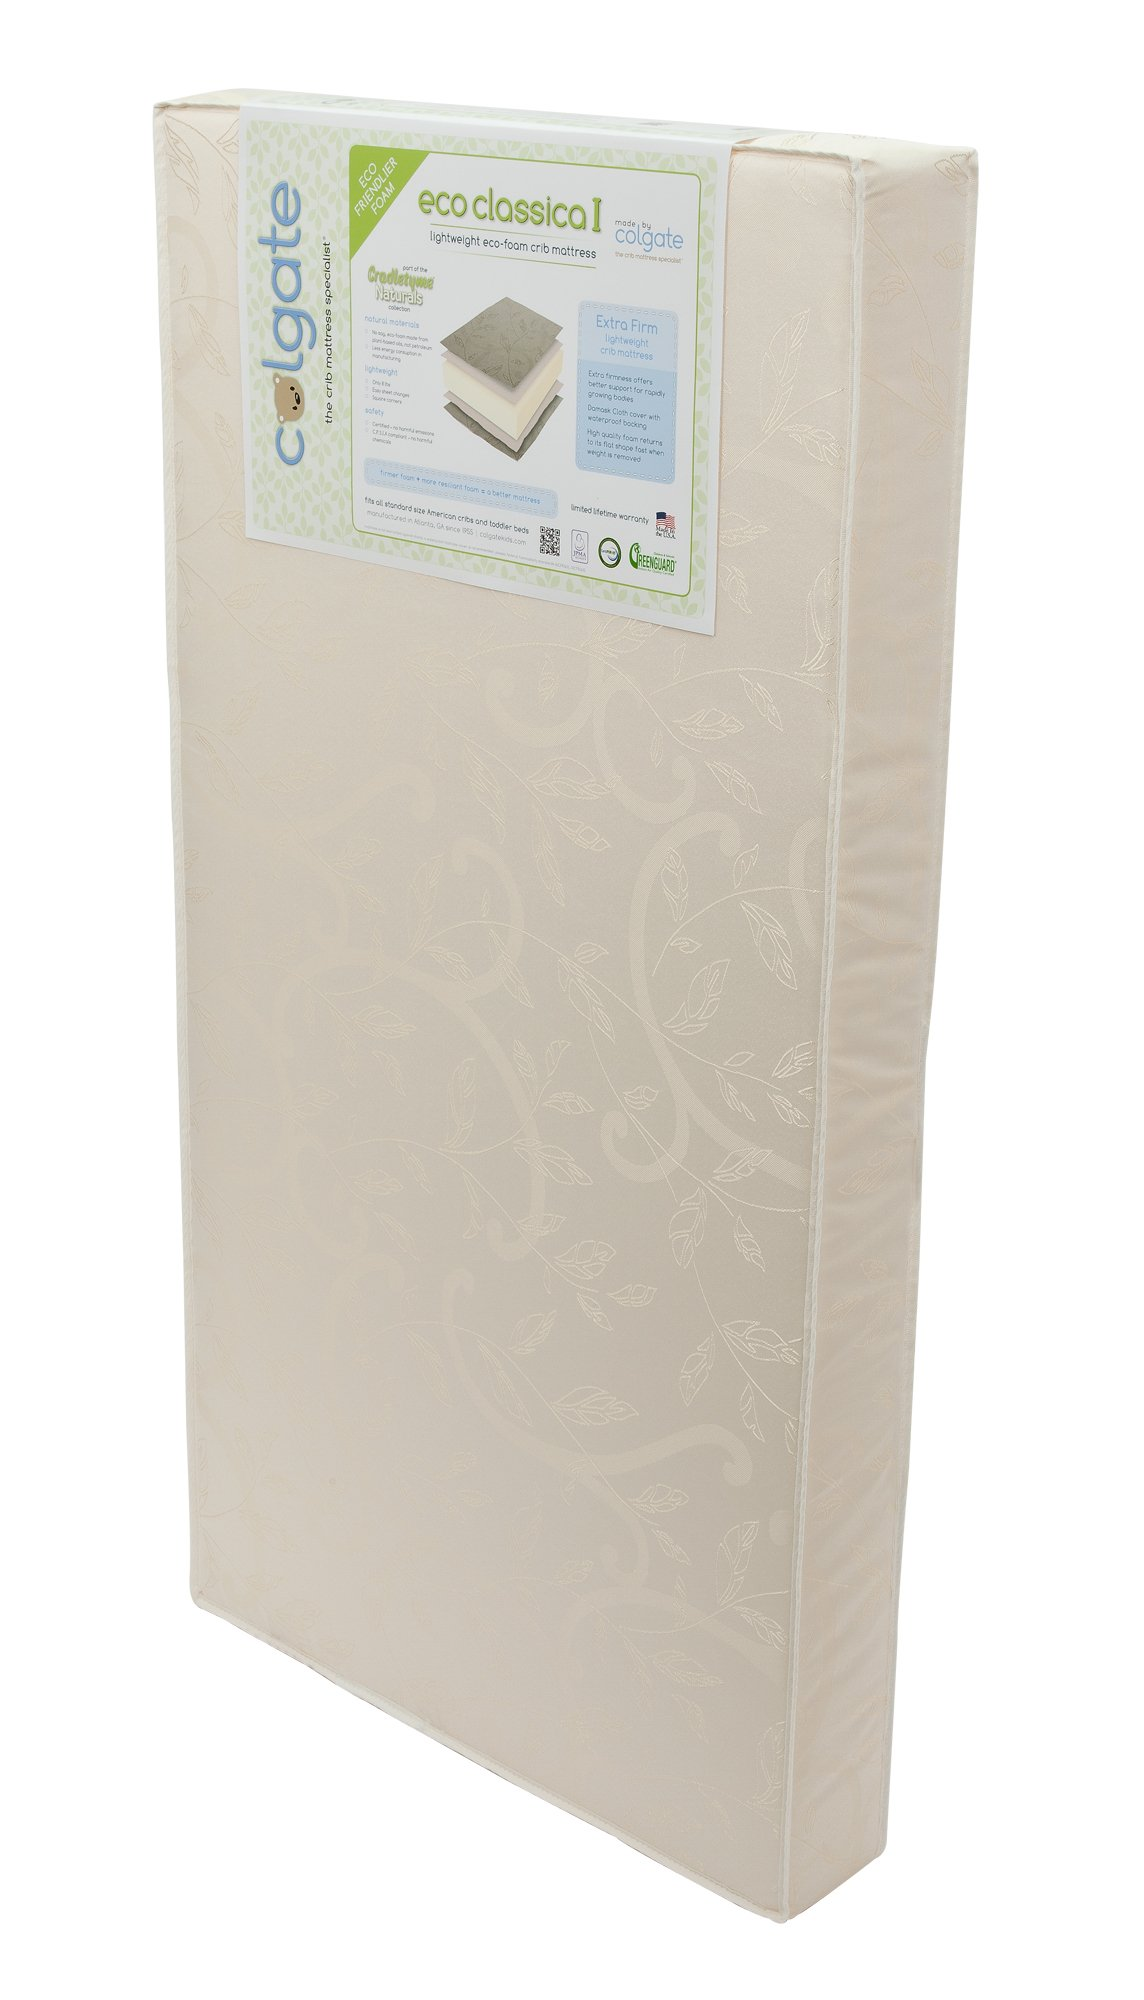 Colgate Eco Classica I - Natural Foam Crib Mattress with Waterproof Cover, Beige